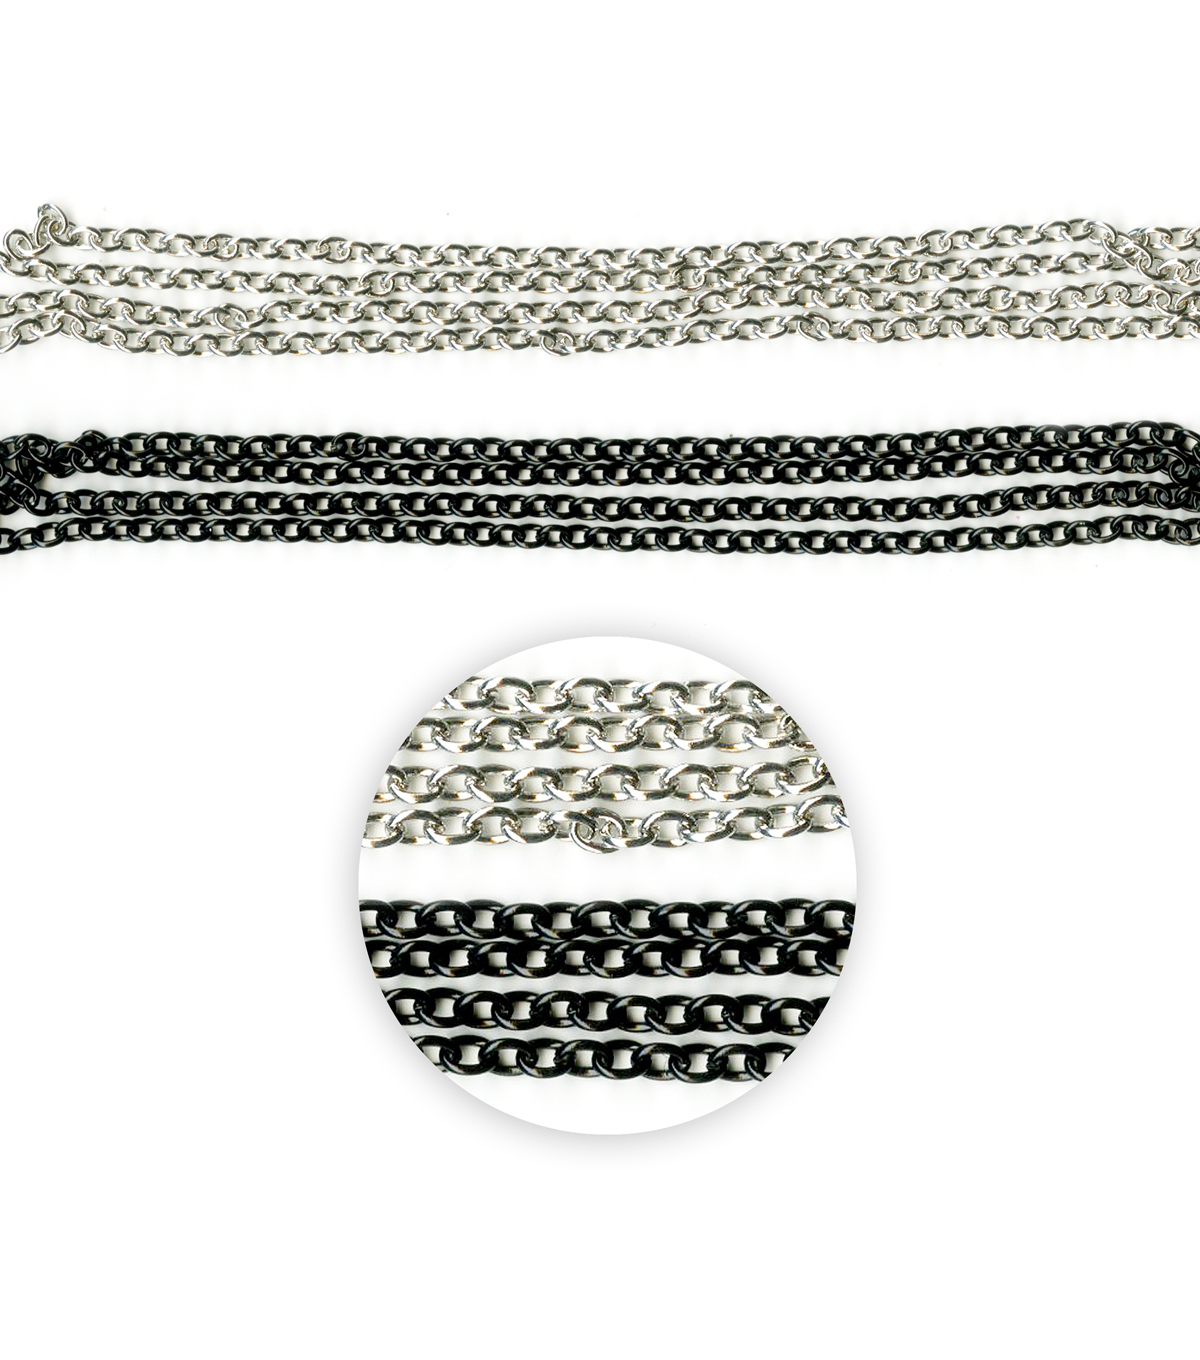 Blue Moon Beads Metal Chain, Oval Cable, Black Enamel, Silver-27\u0022